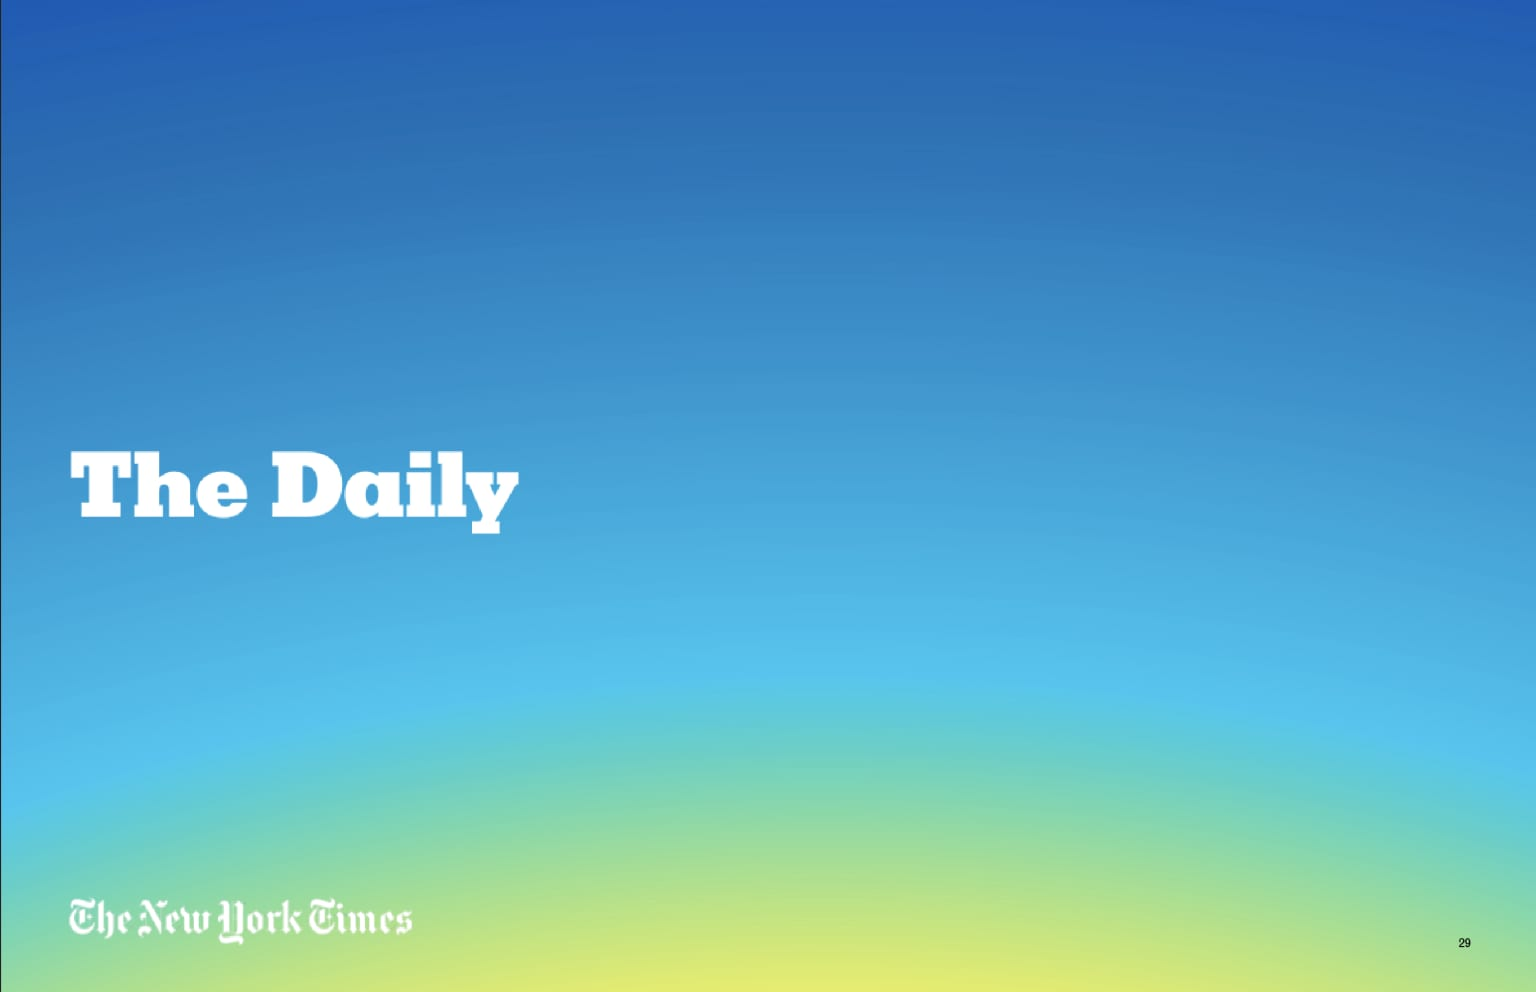 The Daily - New York Times